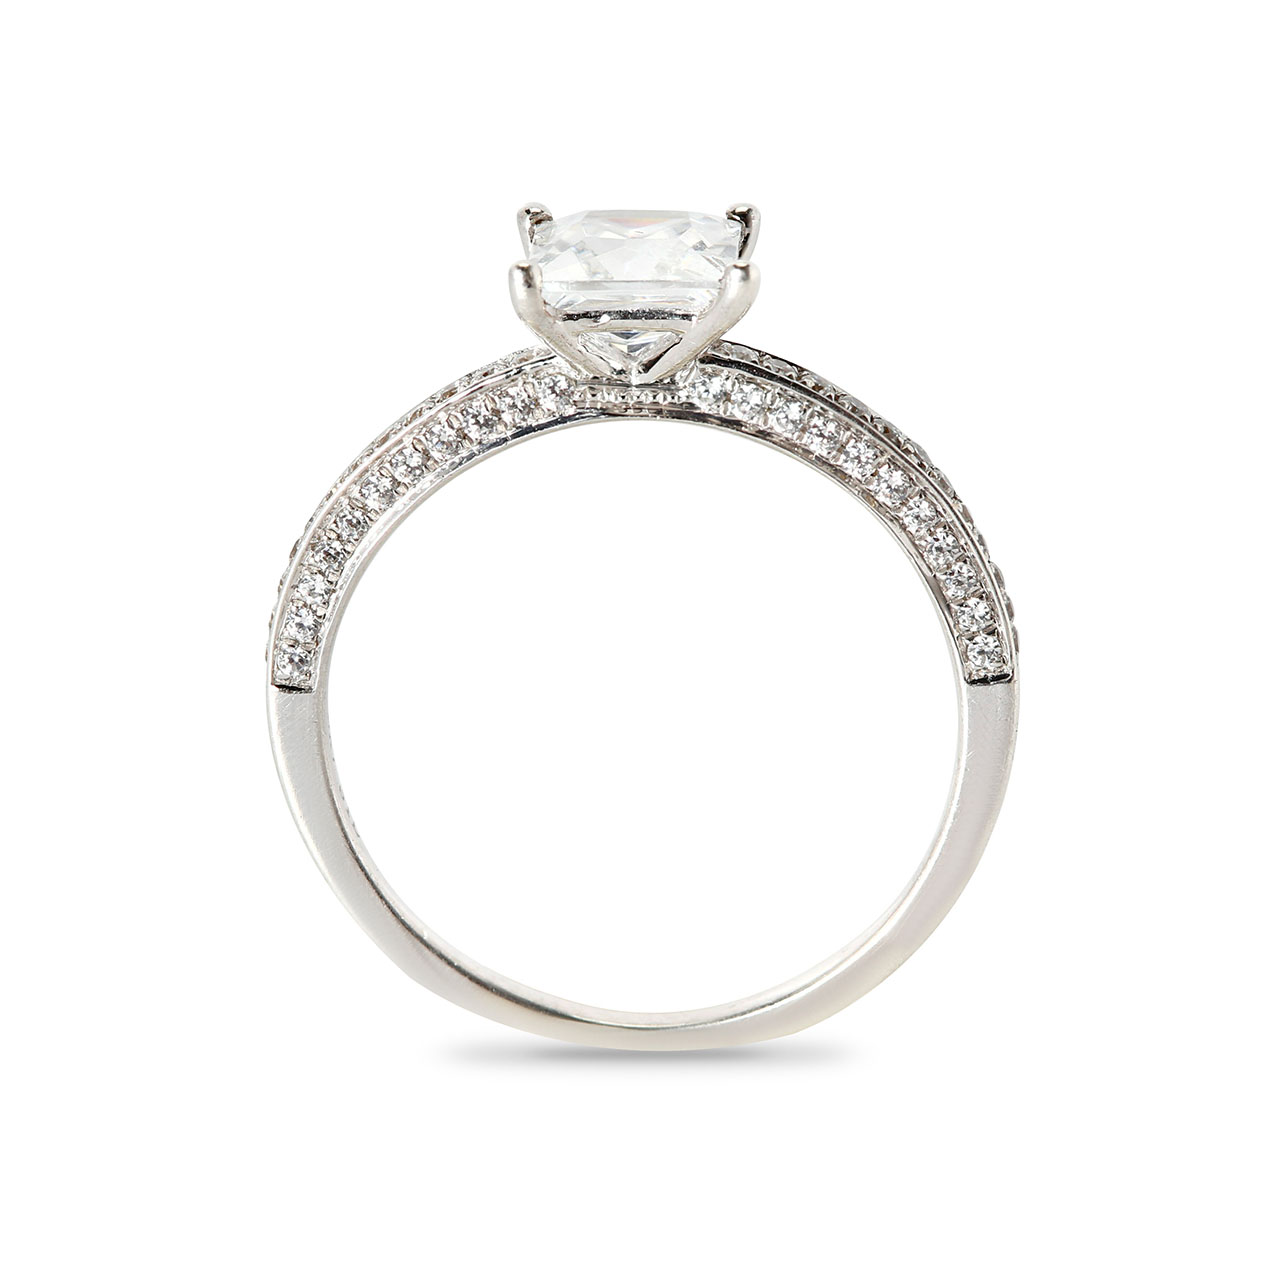 Princess Cut Pave Setting On The Inner Side of The Diamond Engagement Ring Band